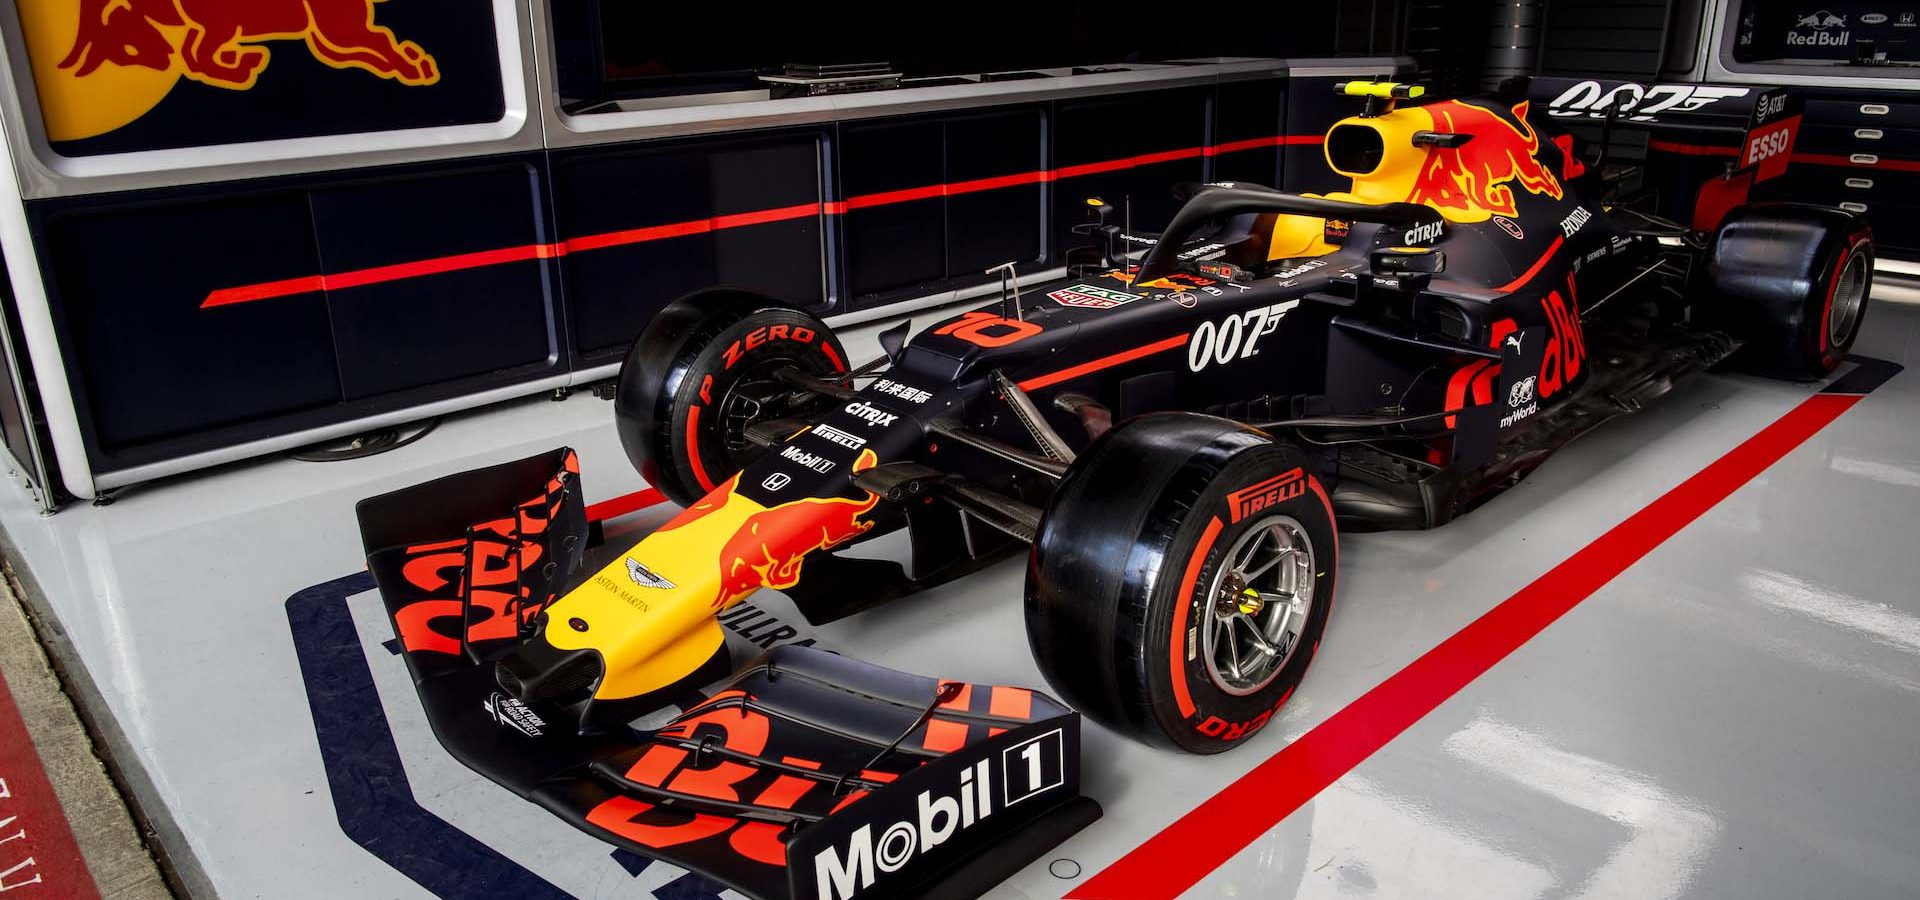 NORTHAMPTON, ENGLAND - JULY 10: The 007 special livery of the Red Bull Racing RB15 is seen in the garage during previews ahead of the F1 Grand Prix of Great Britain at Silverstone on July 10, 2019 in Northampton, England. (Photo by Mark Thompson/Getty Images)